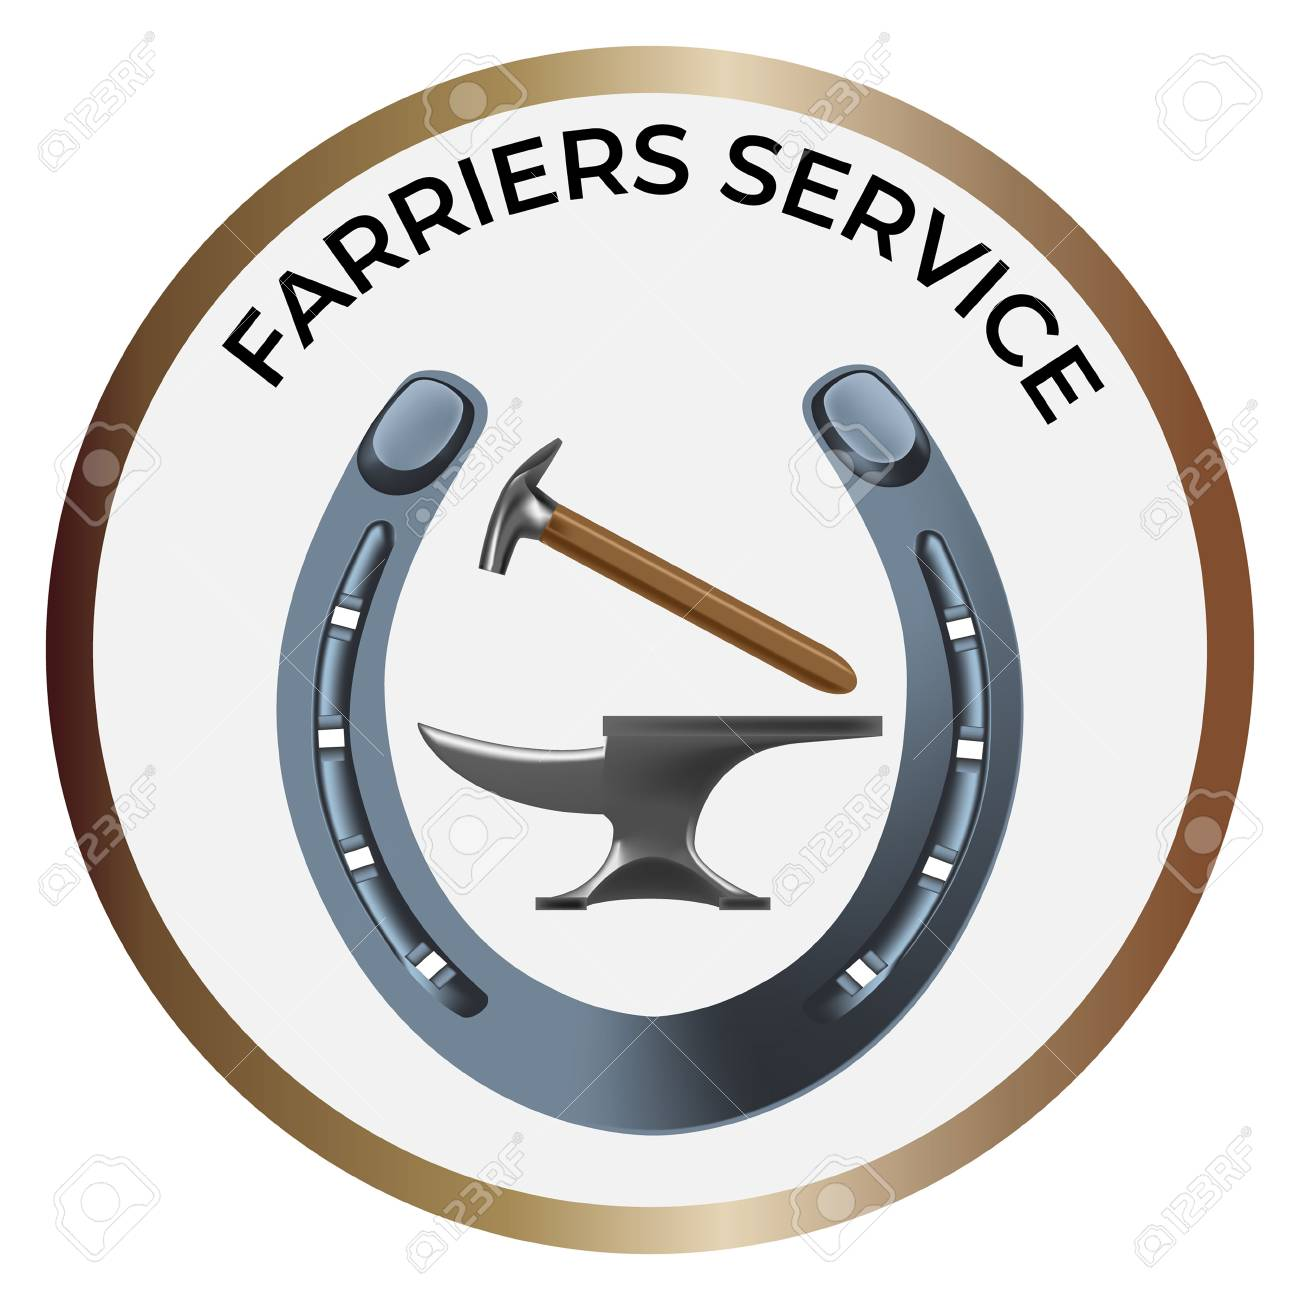 Farriers services icon in realistic style  Anvil, shoe and hammer